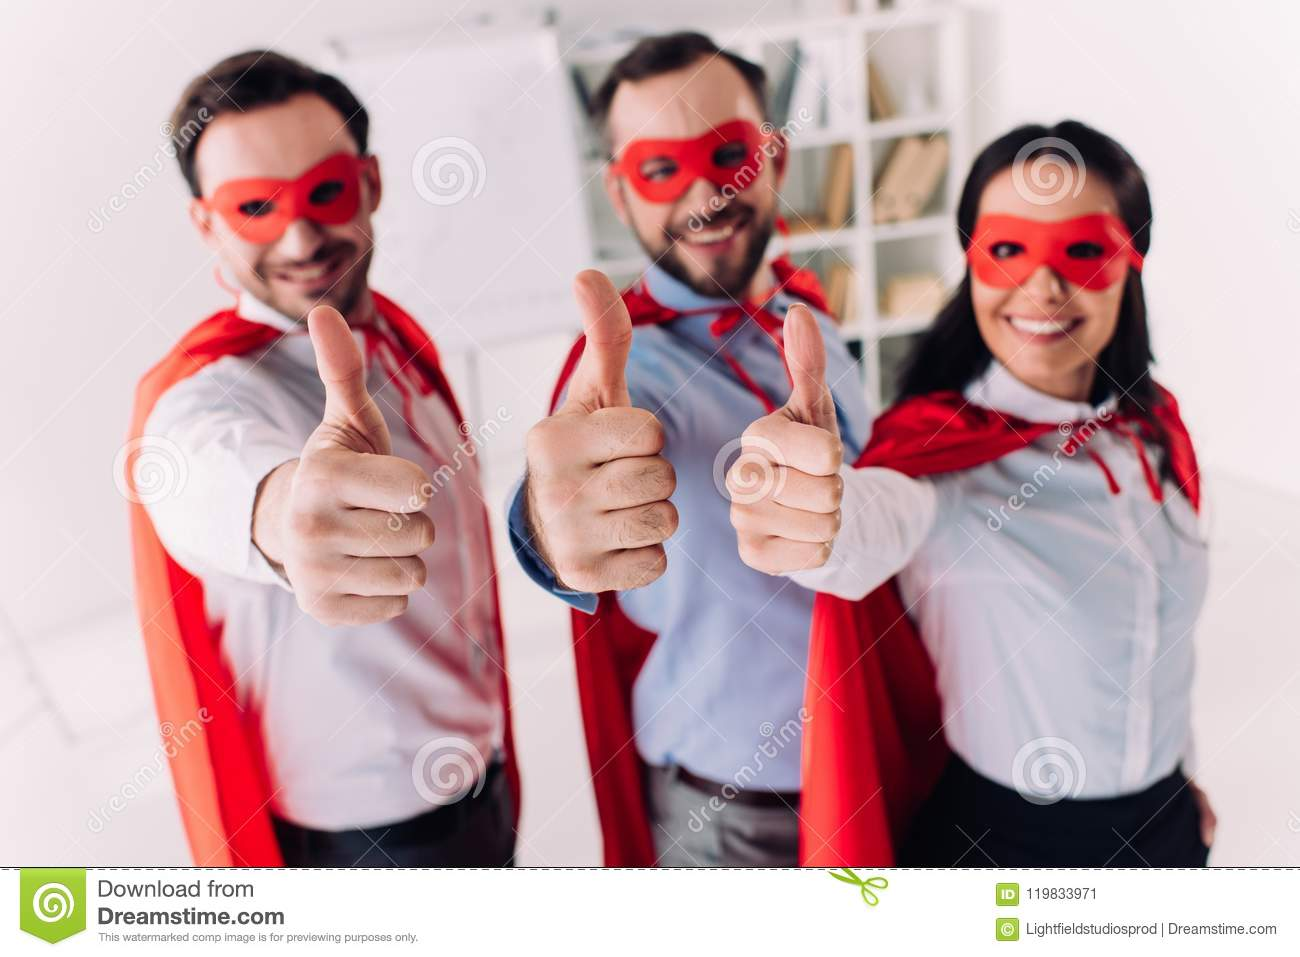 super businesspeople in masks and capes showing thumbs up